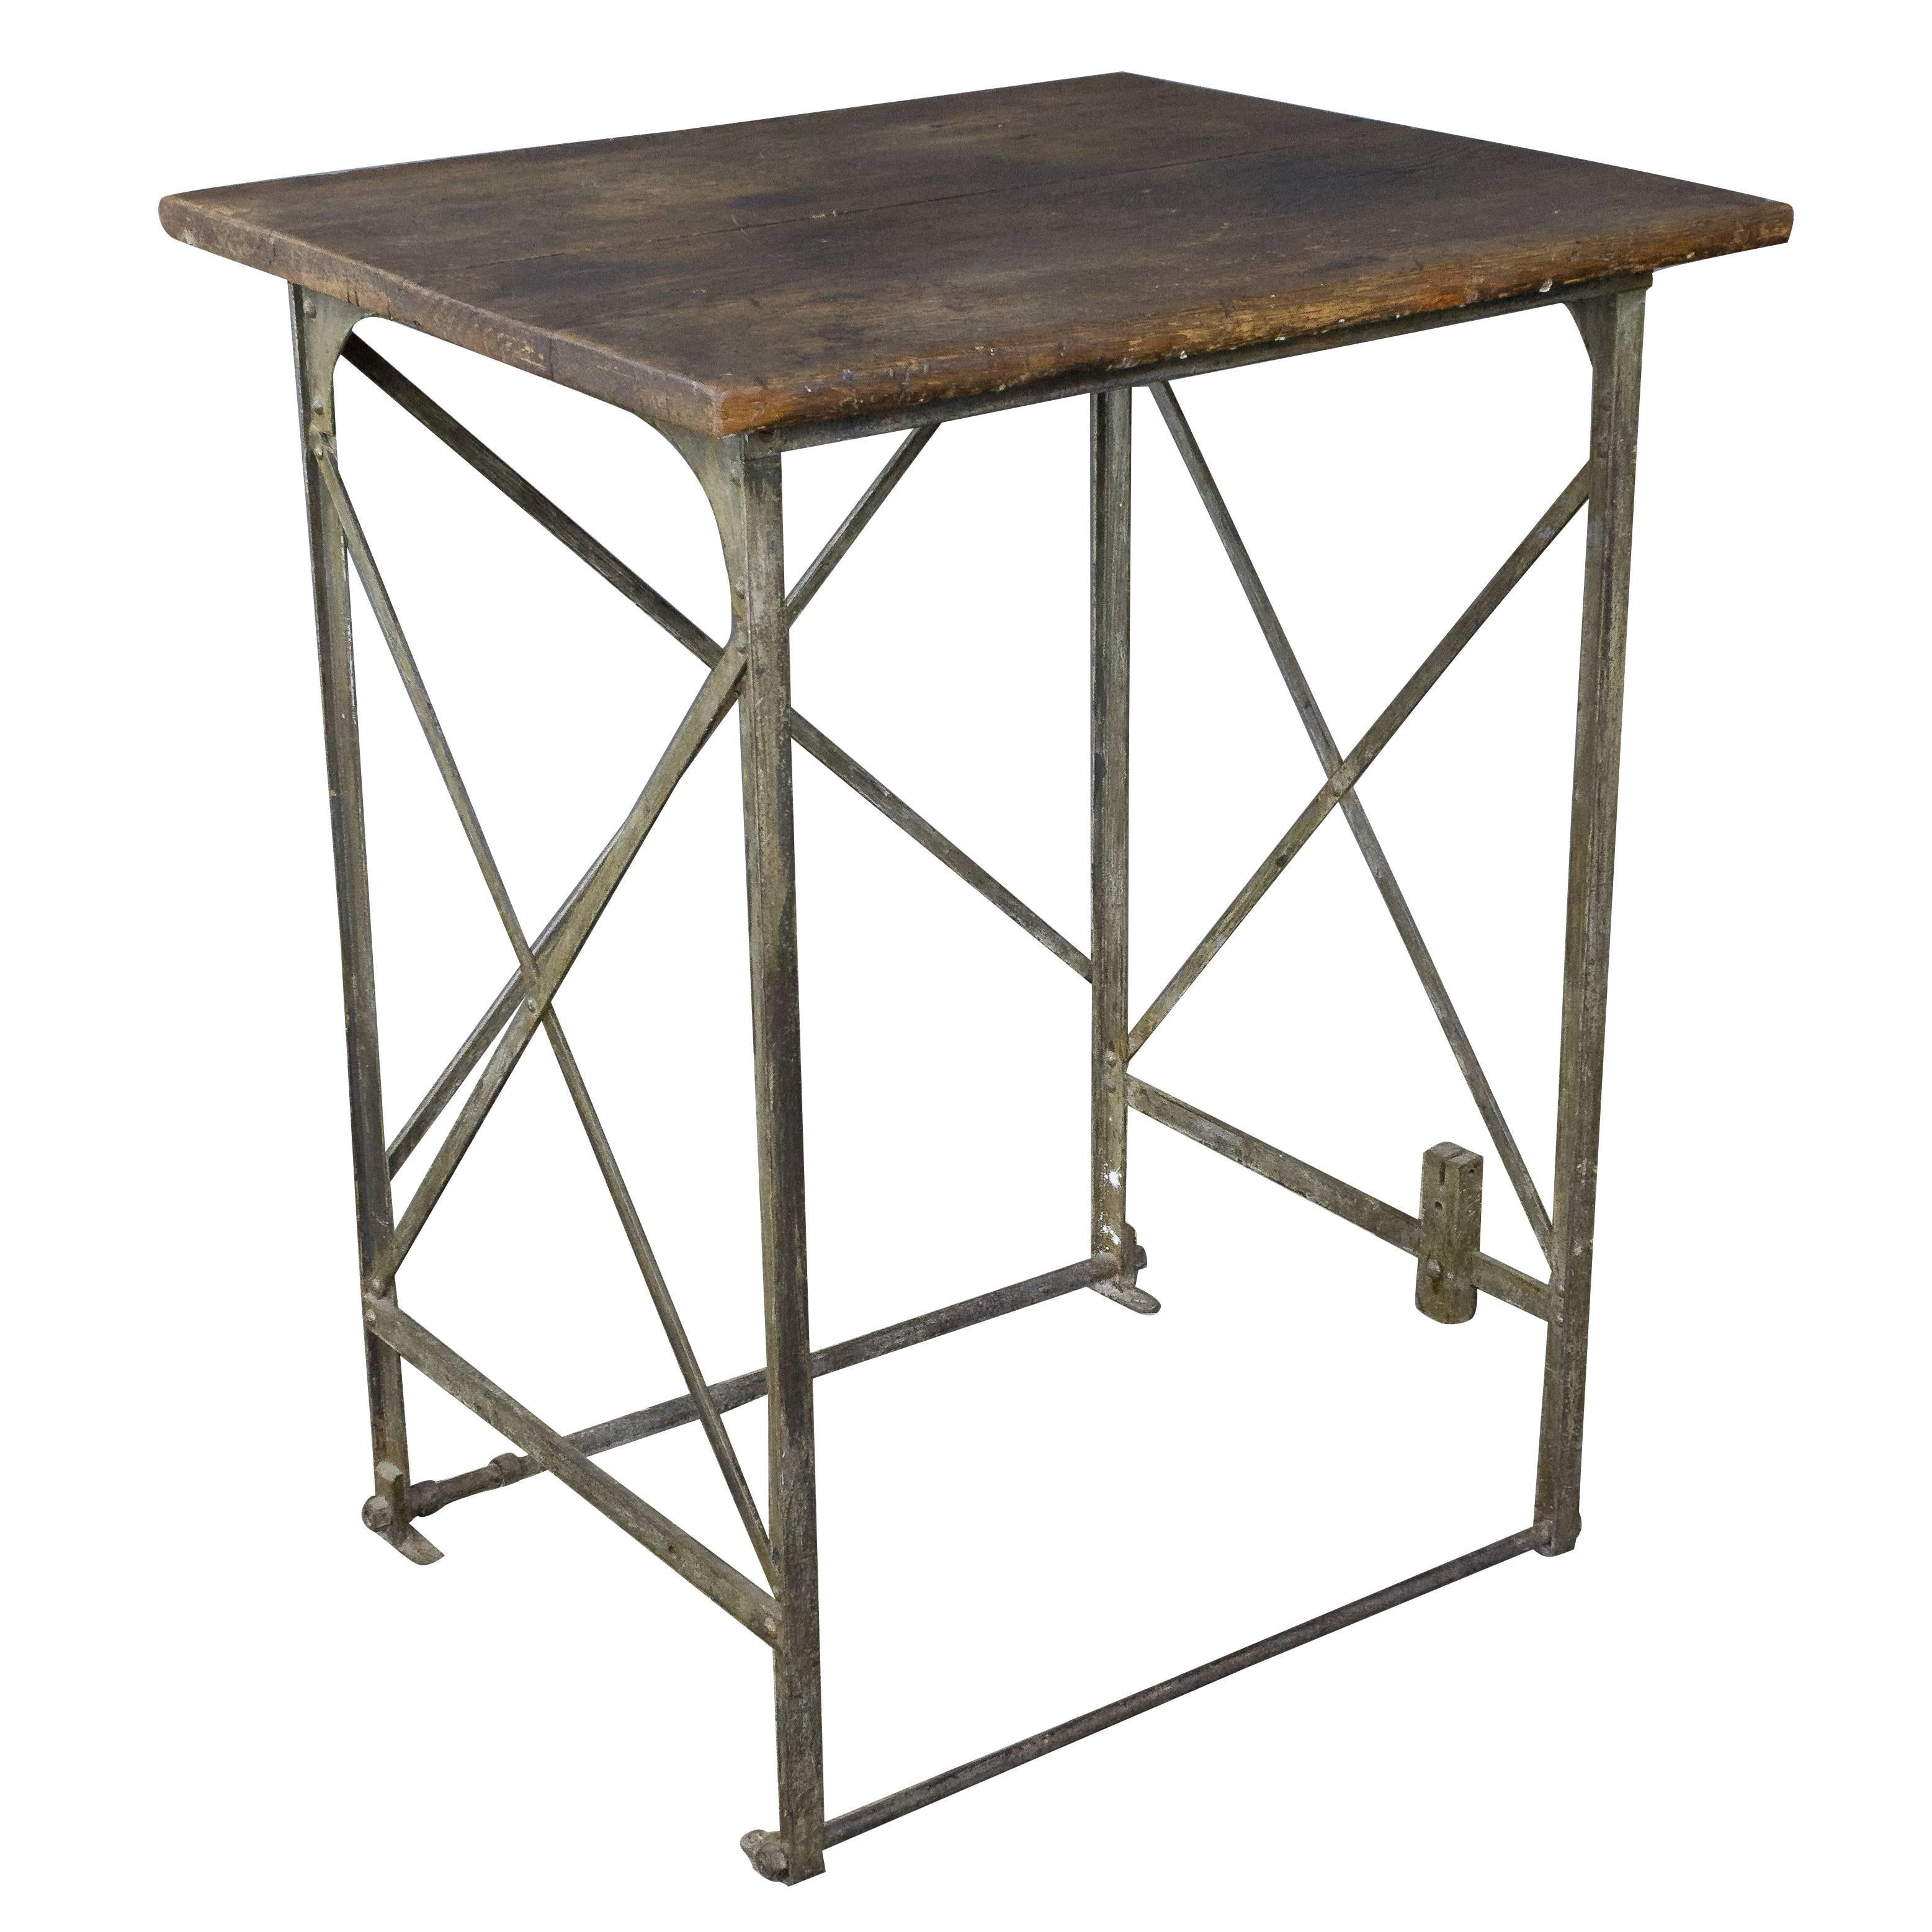 Early 20th Century French Industrial Factory Table